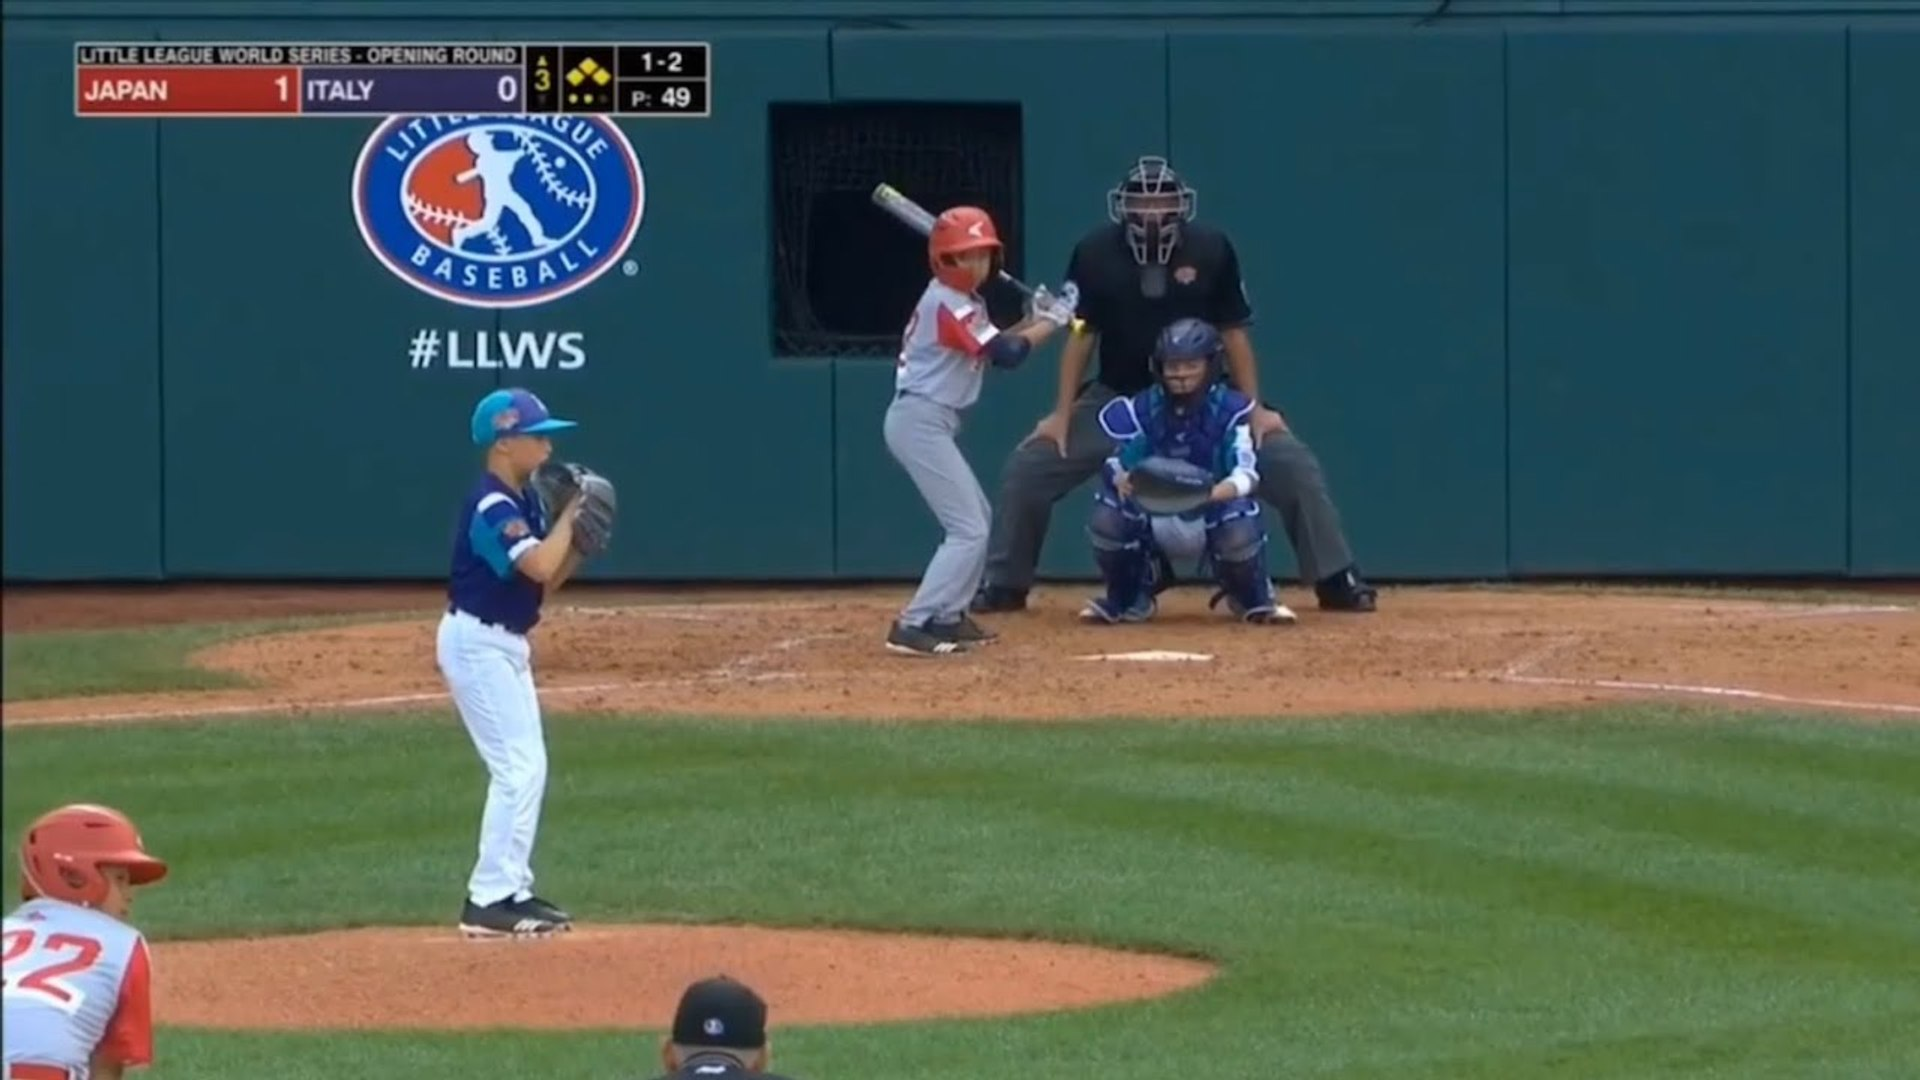 LLWS 2019 Opening Round - Japan vs Italy - 2019 Little League World Series Highlights